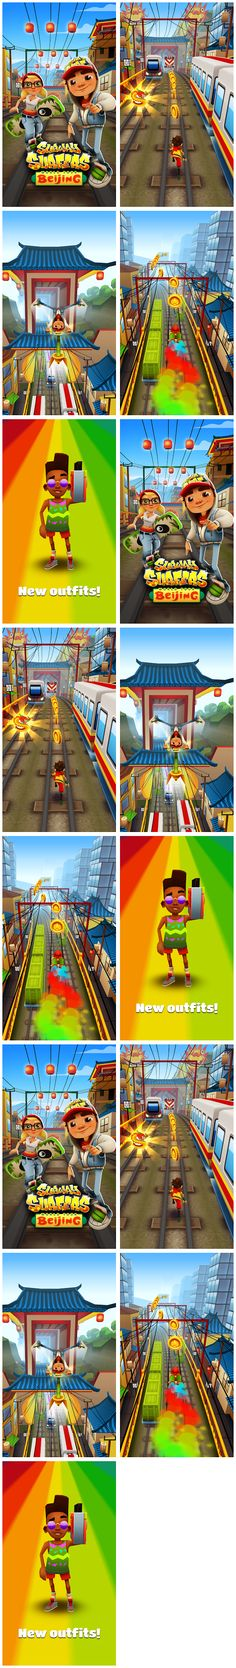 Check-out Subway Surfers